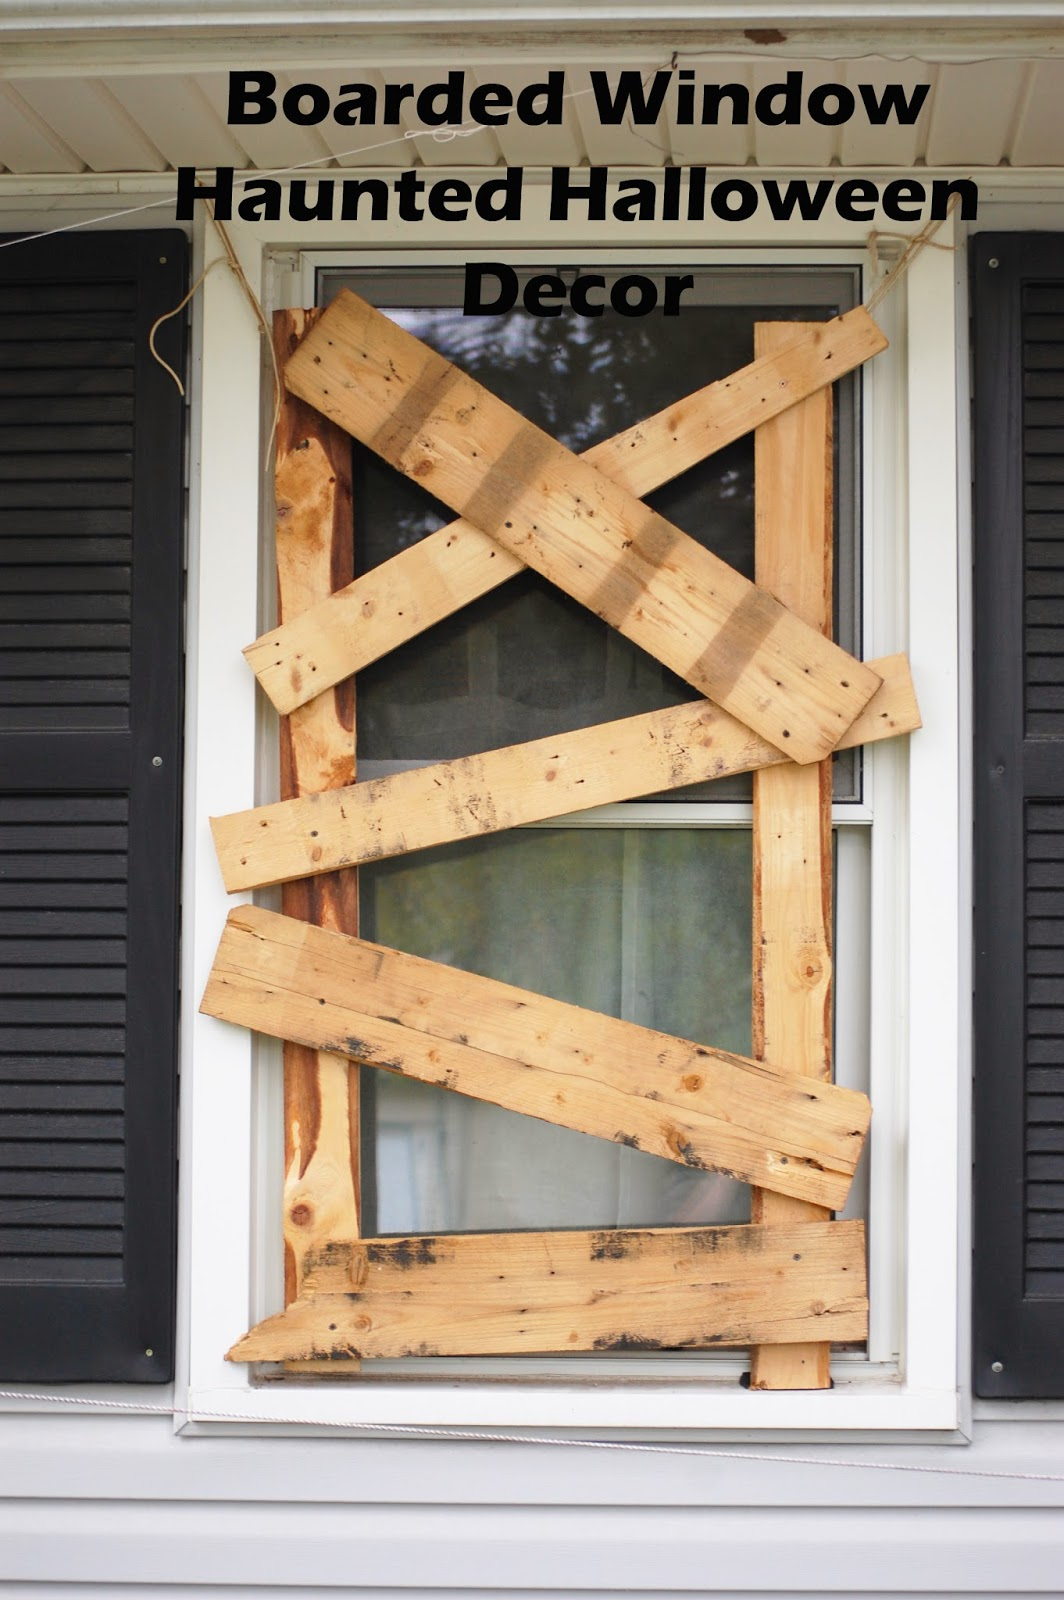 Violet's Buds: Boarded Window Halloween Decoration DIY